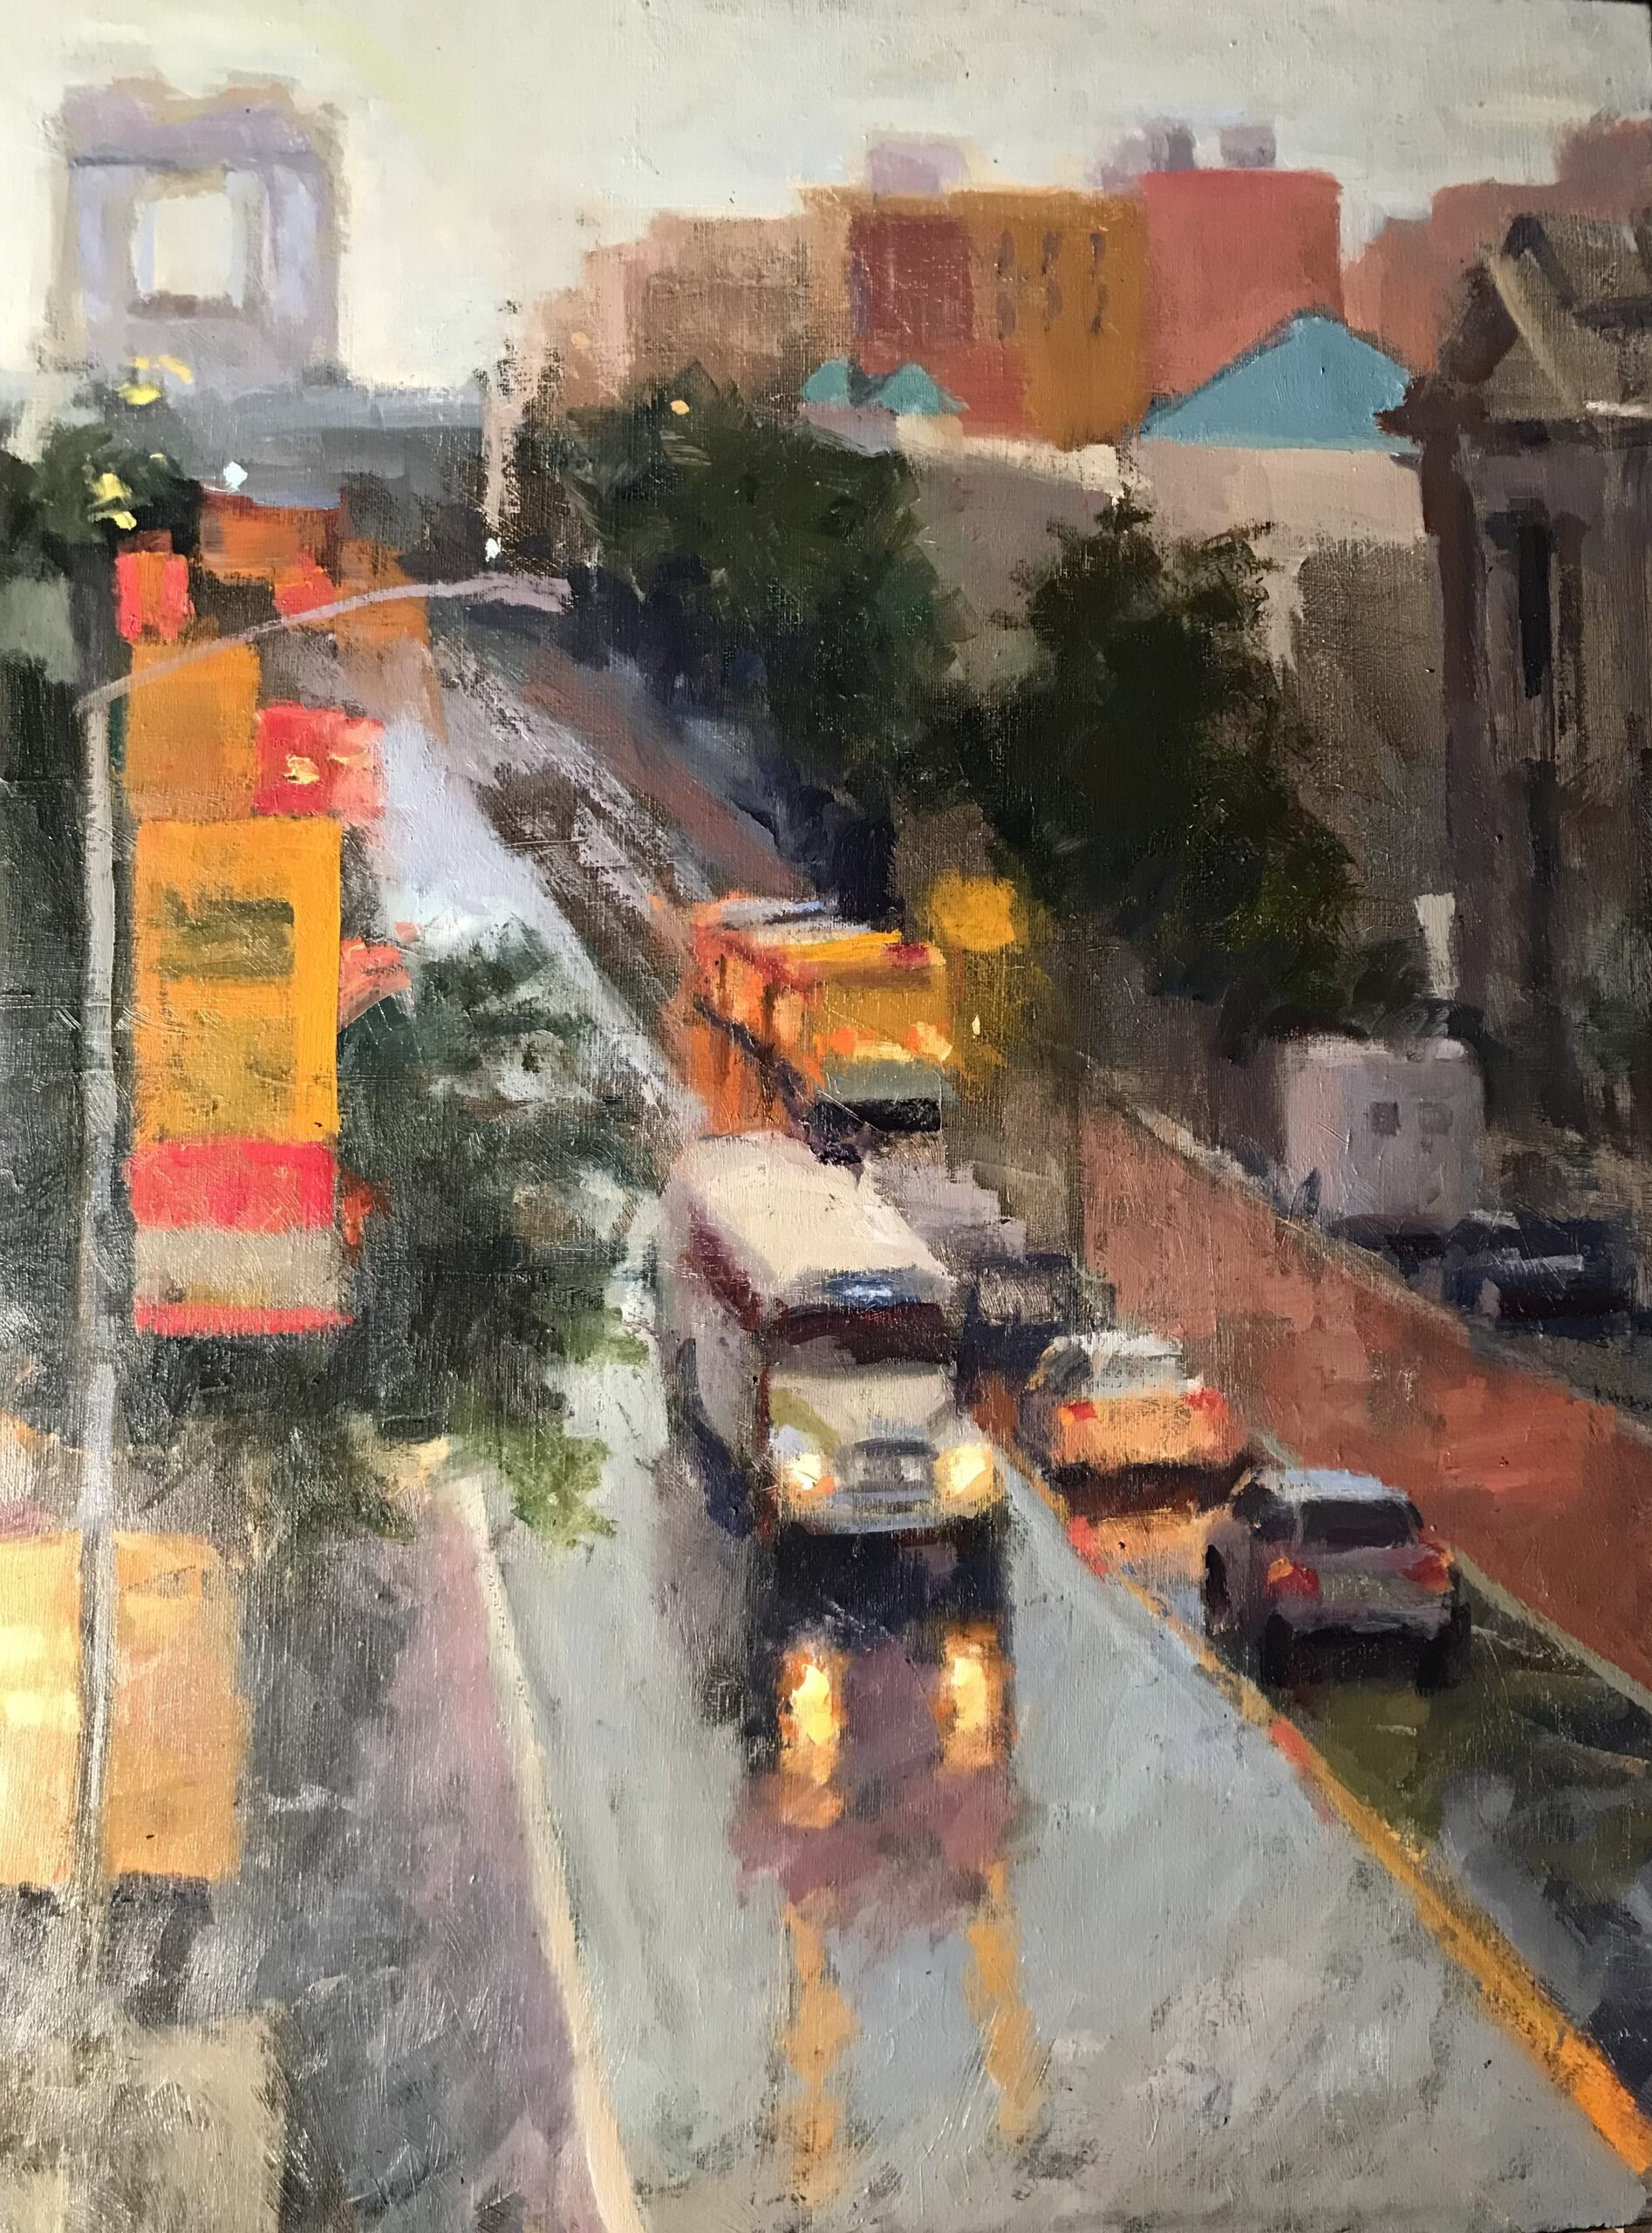 Crosstown Bus, Oil on Canvas, 36 x 24 Inches, by Susan Grisell $1500